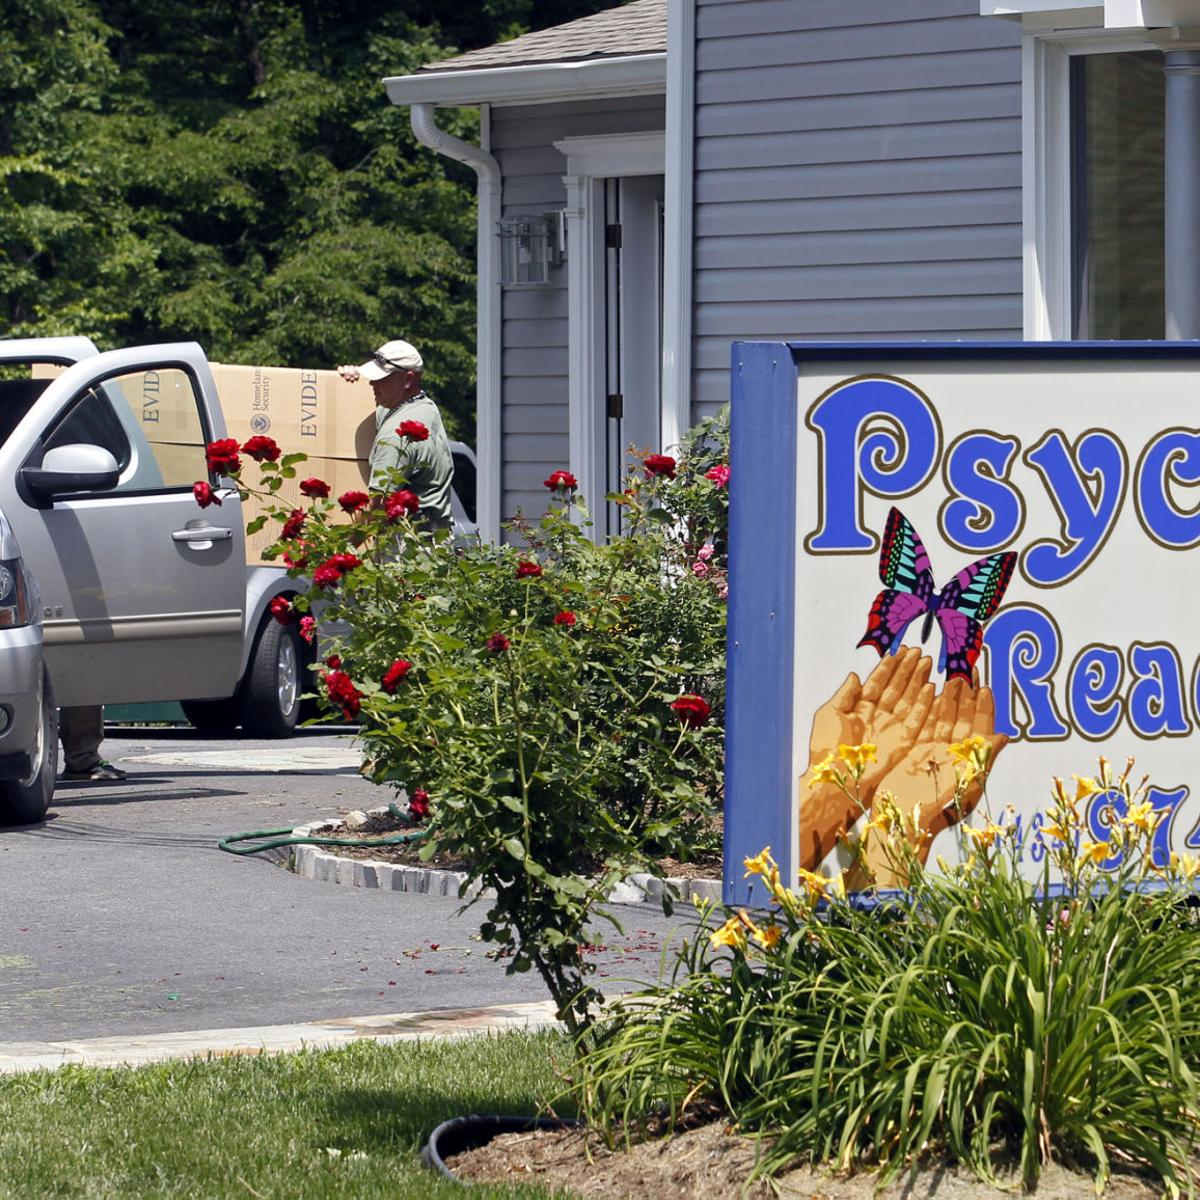 Albemarle psychic facing federal fraud charges | Local News